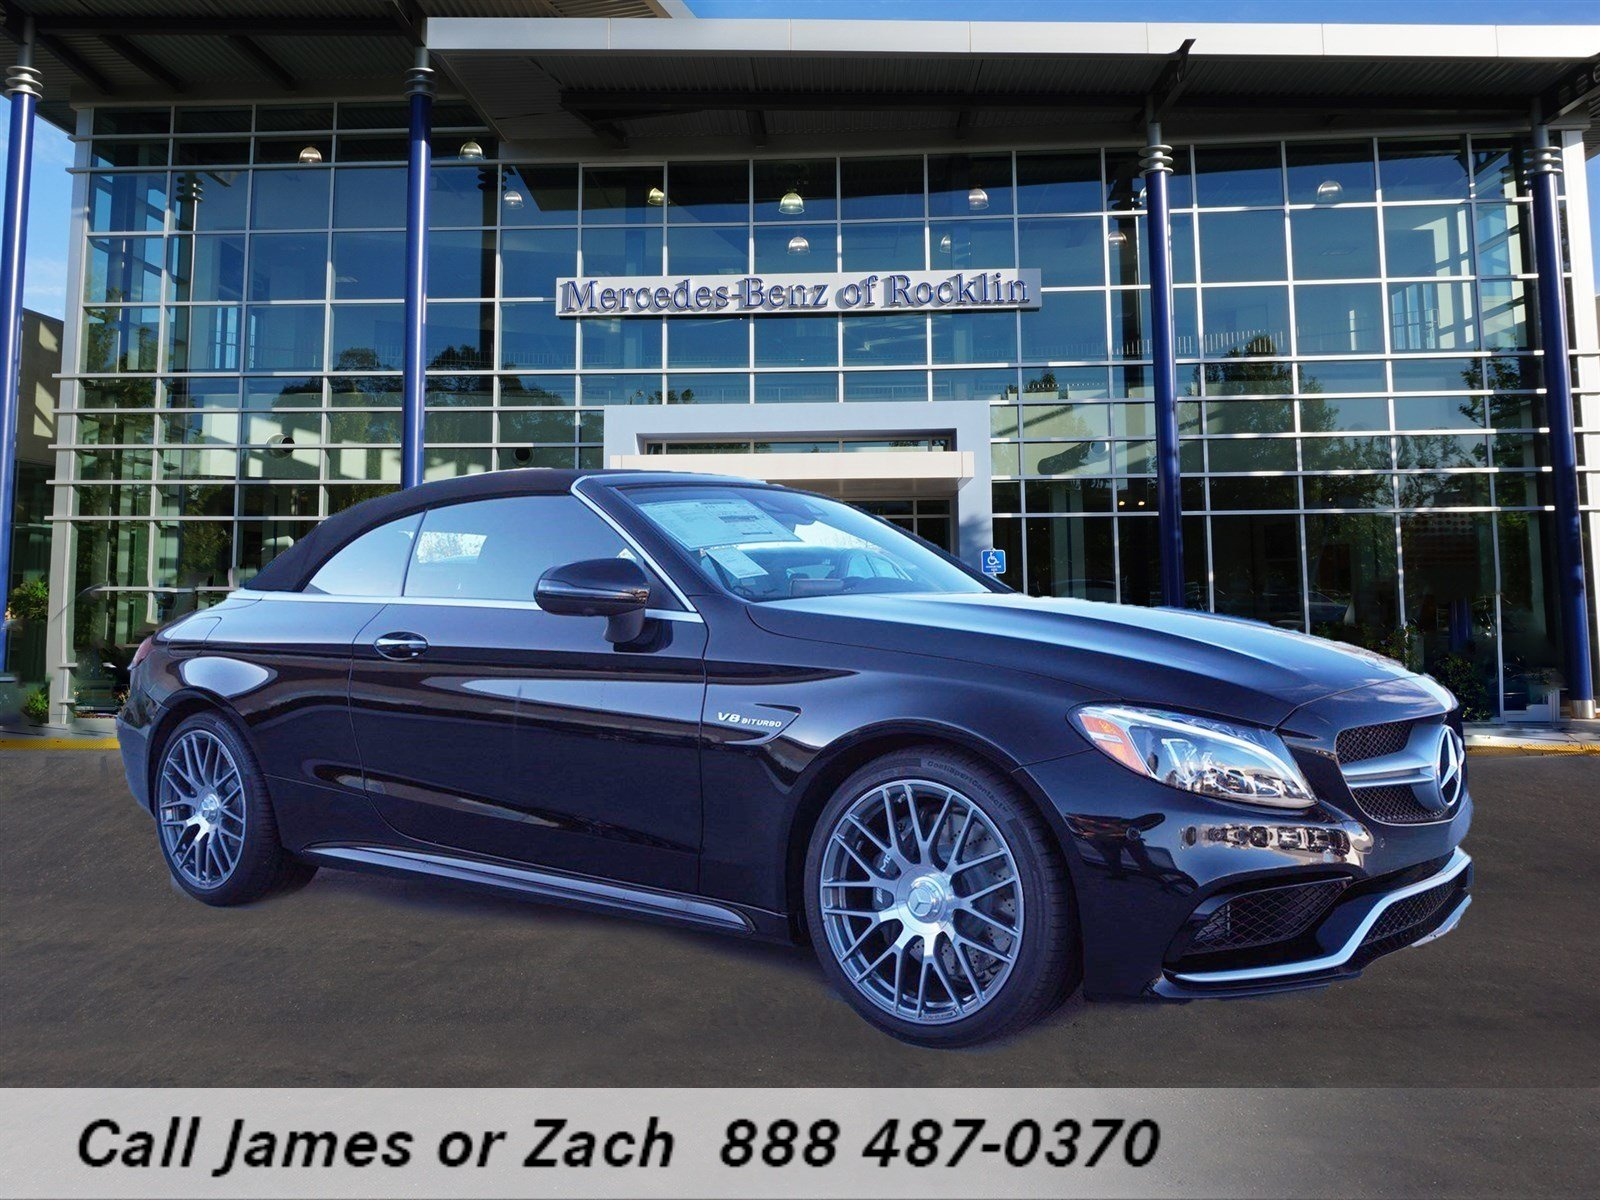 New 2017 mercedes benz c class c 63 amg cabriolet for Mercedes benz rocklin service